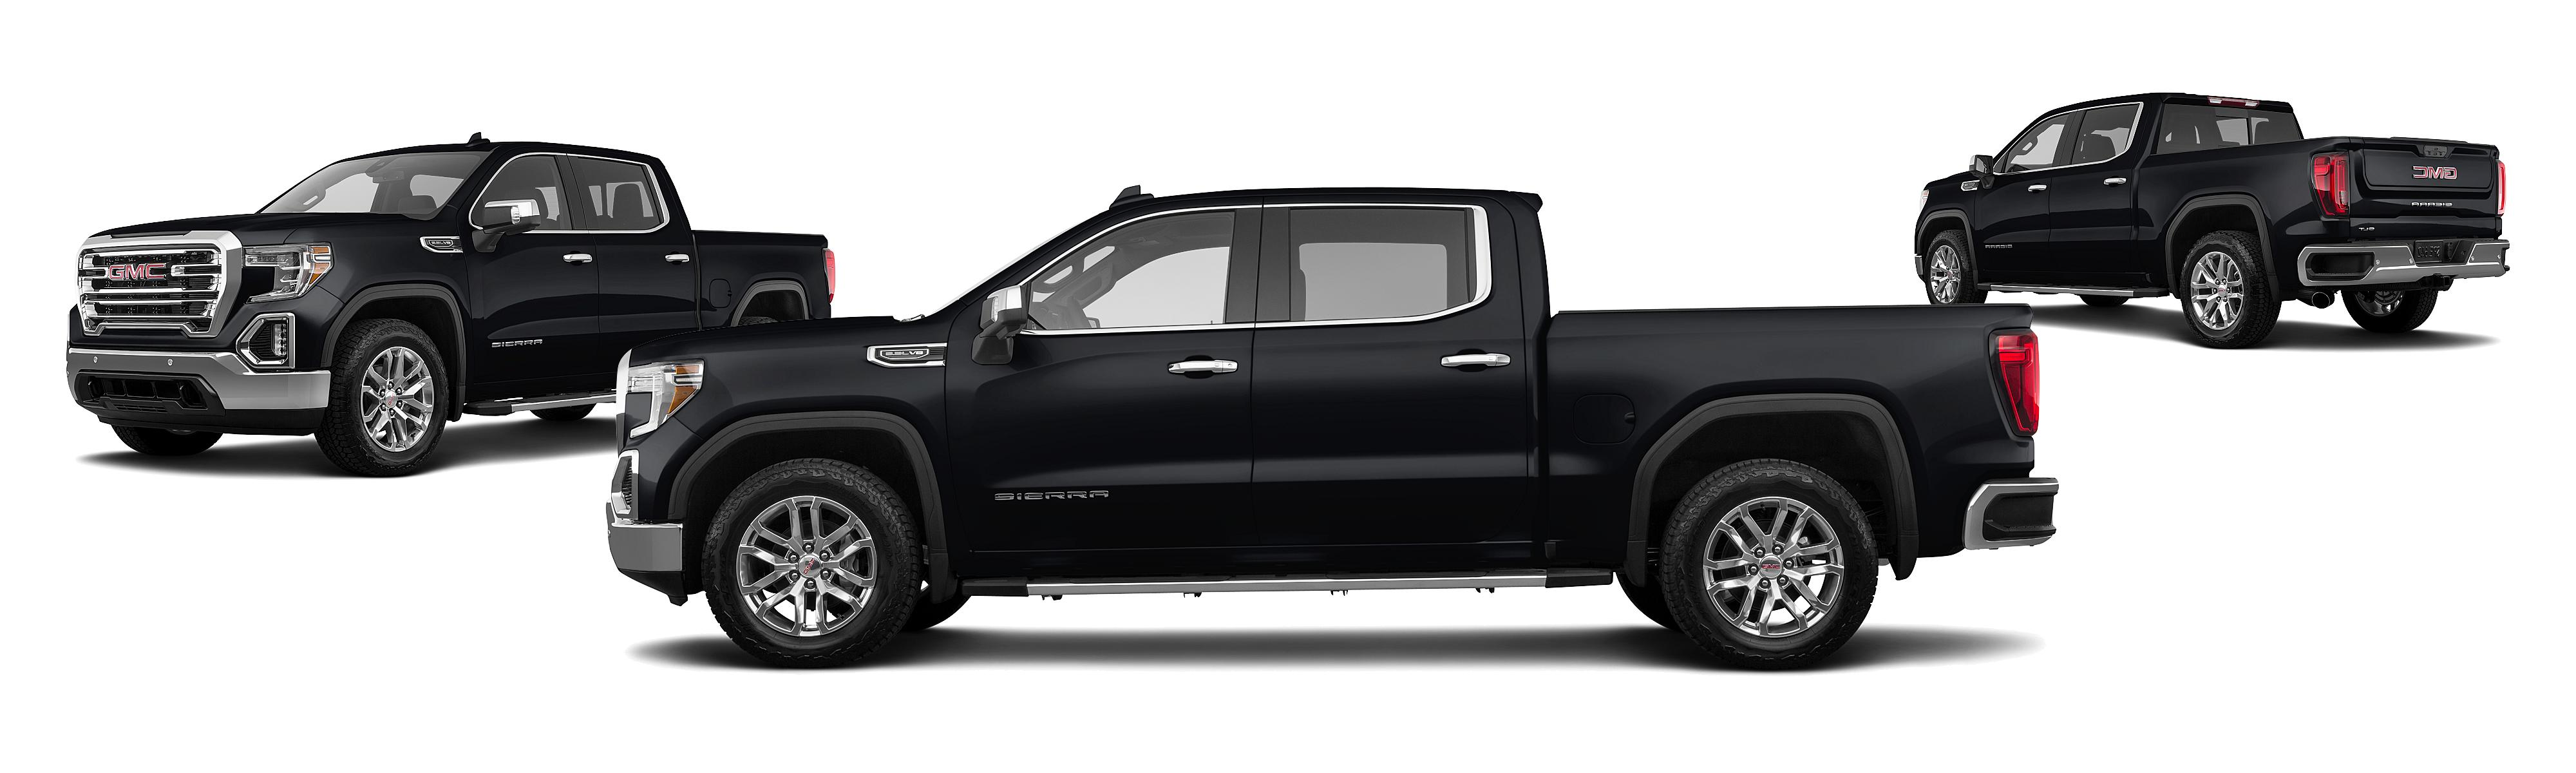 2019 Gmc Sierra 1500 4x4 At4 4dr Crew Cab 5 8 Ft Sb Research Groovecar